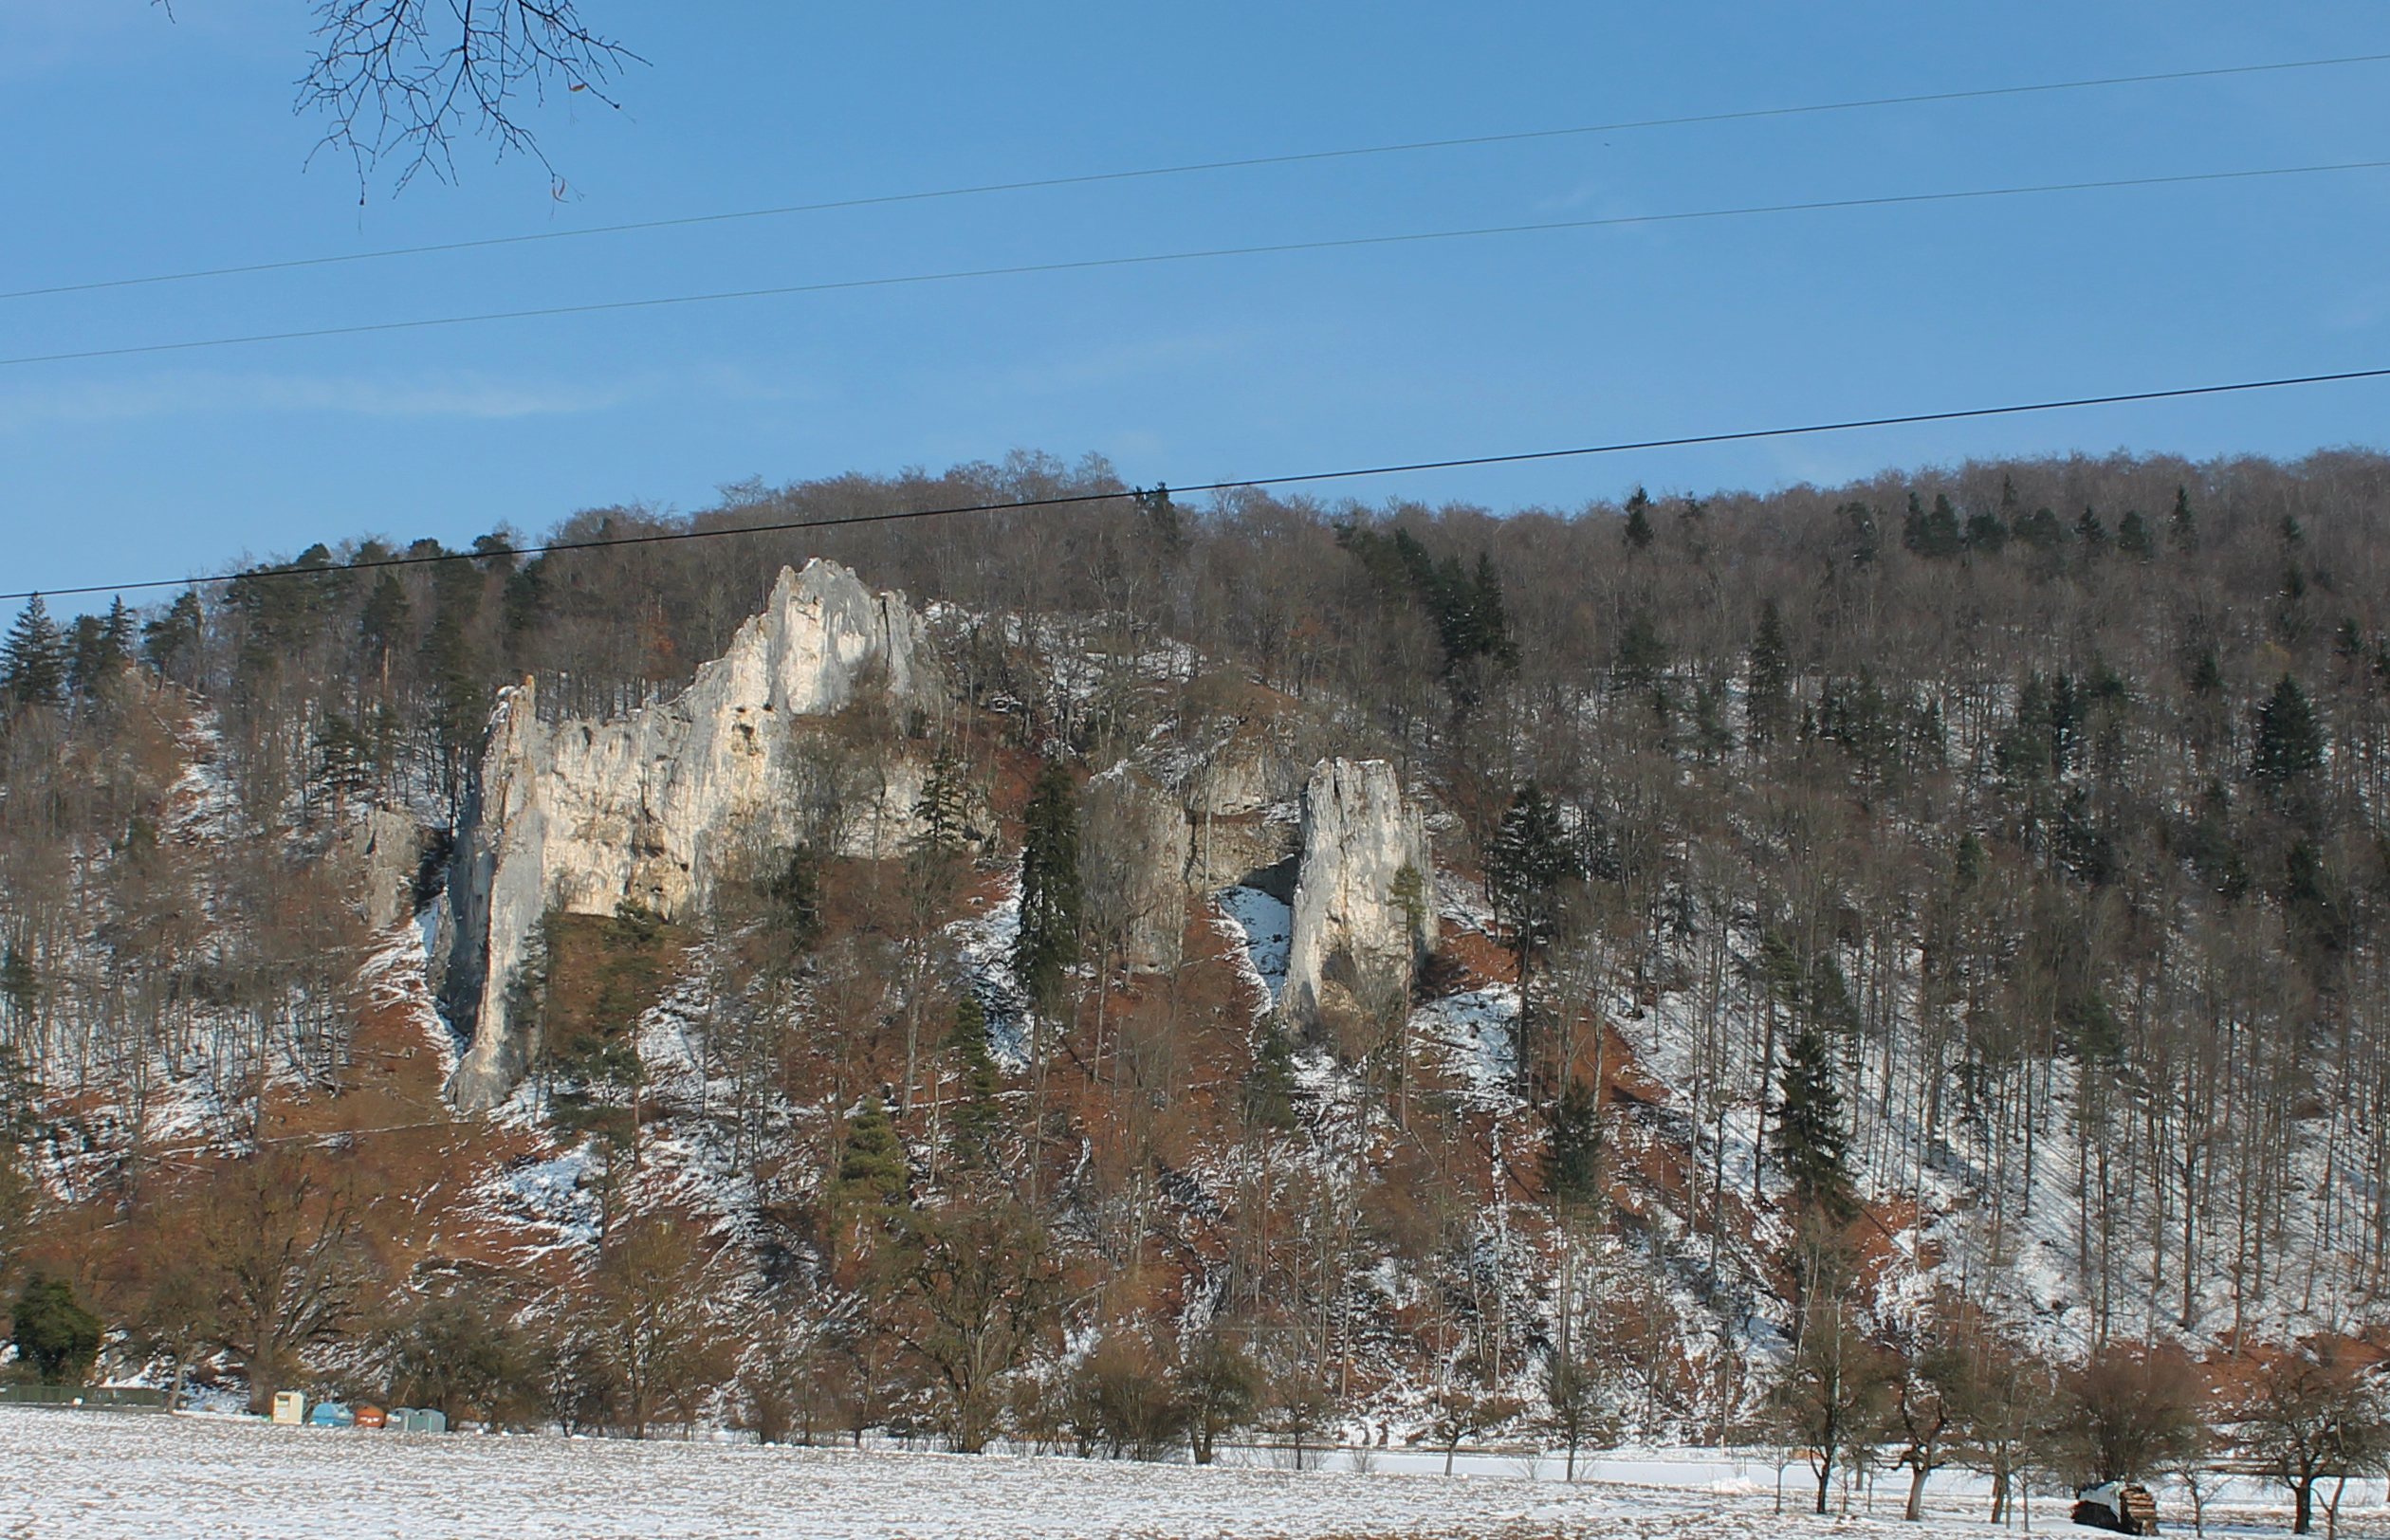 A view of the limestone cliffs at Geißenklösterle (Germany) as seen from the floor of the Ach Valley.